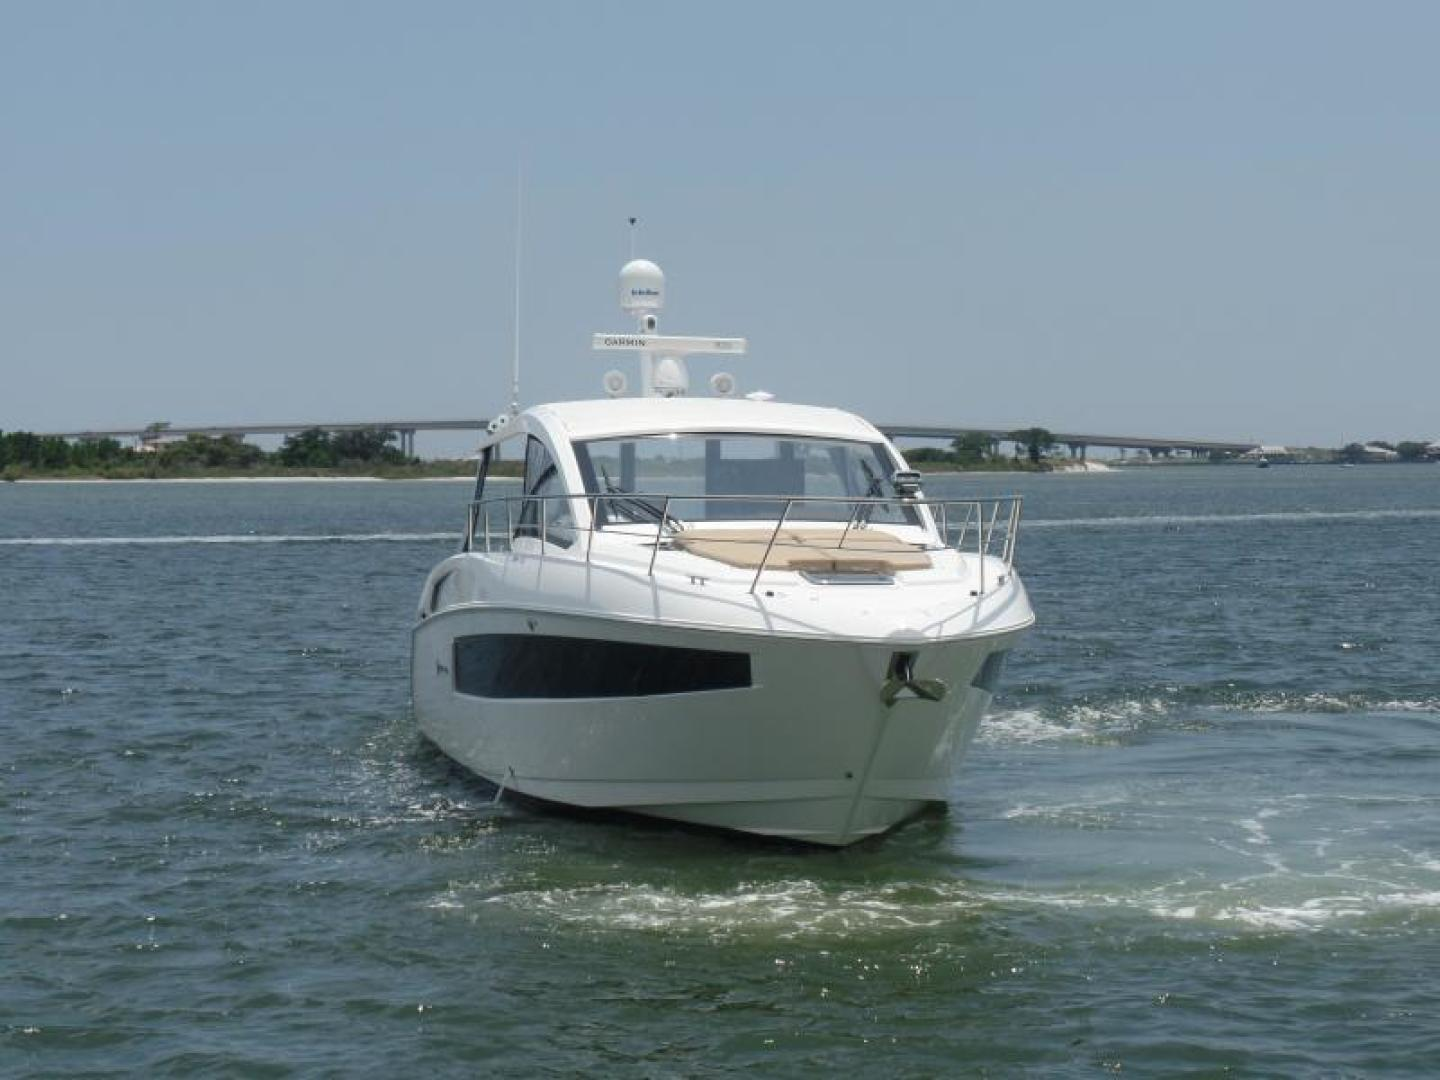 Cruisers-39 Express Coupe 2015-Tranquila Palm Beach-Florida-United States-39 Cruisers Starboard bow-1408623 | Thumbnail